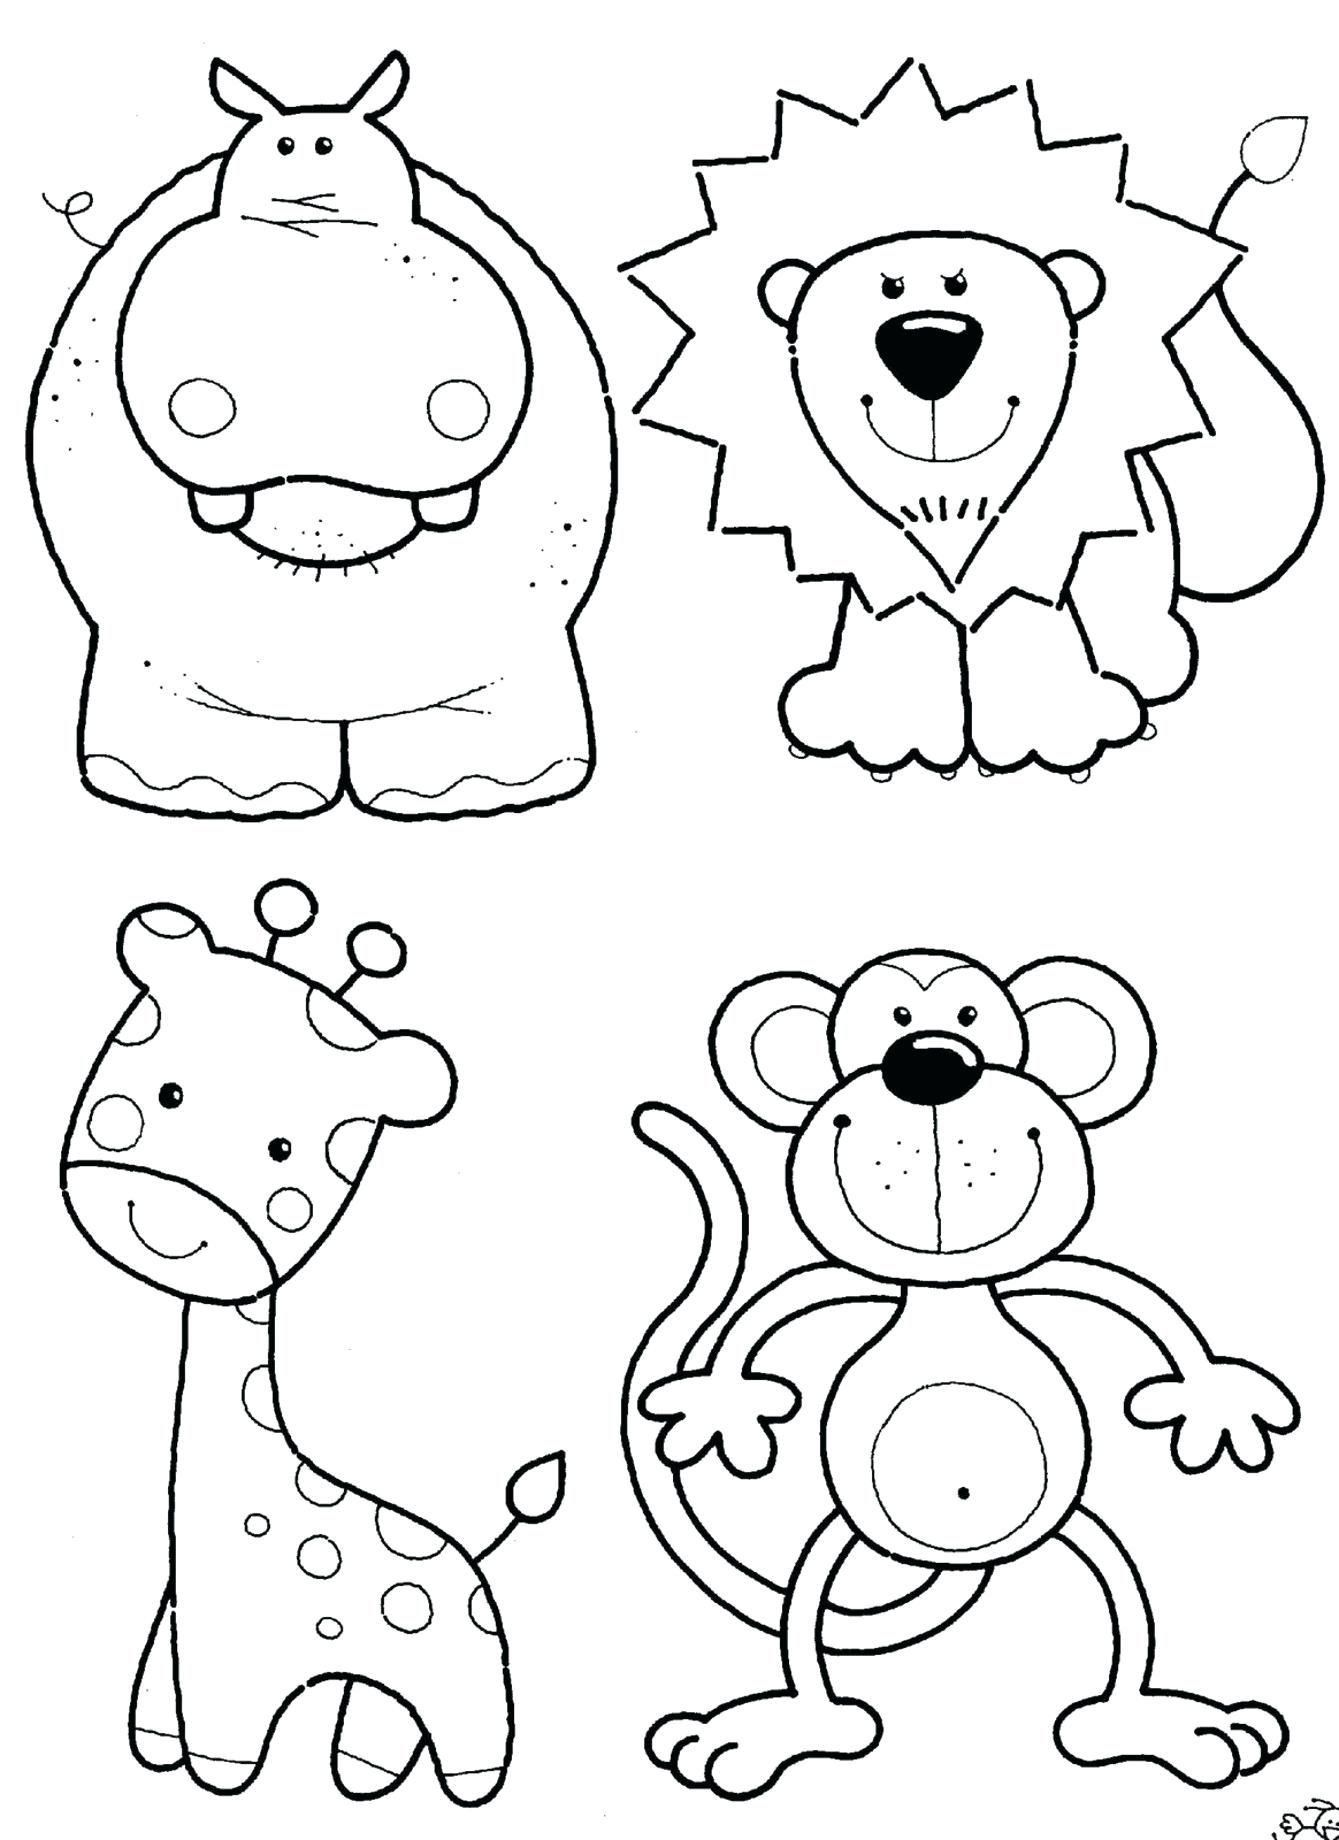 Savanna Animals Coloring Pages Animal Worksheet Animal Color Worksheet Drawing Zoo Coloring Pages Animal Coloring Books Giraffe Coloring Pages